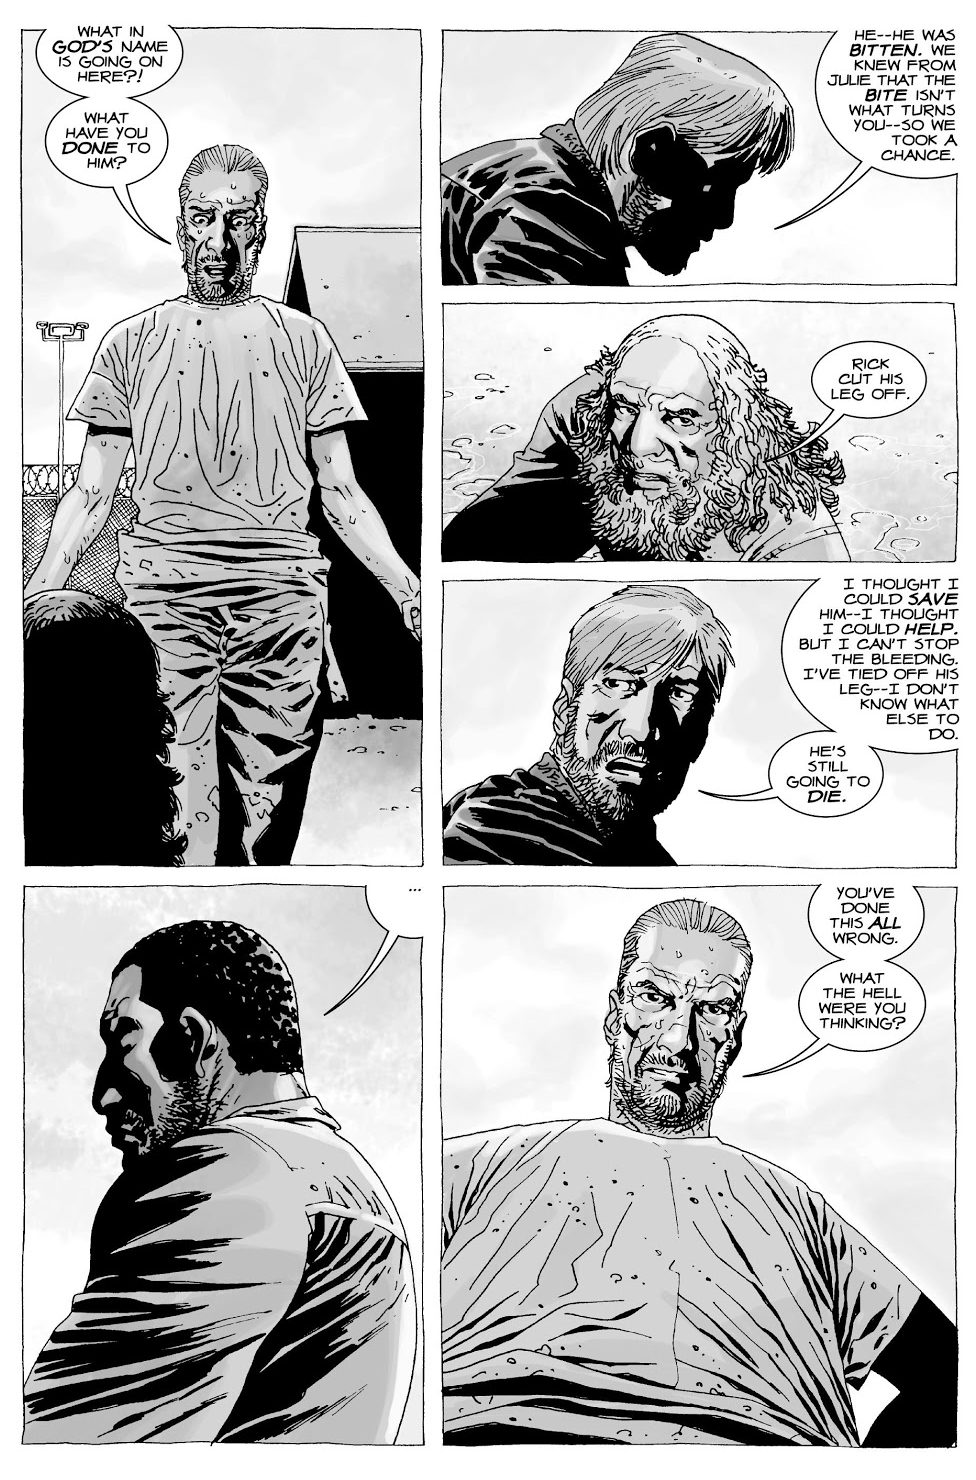 Rick Grimes Amputates Allen's Leg (The Walking Dead)